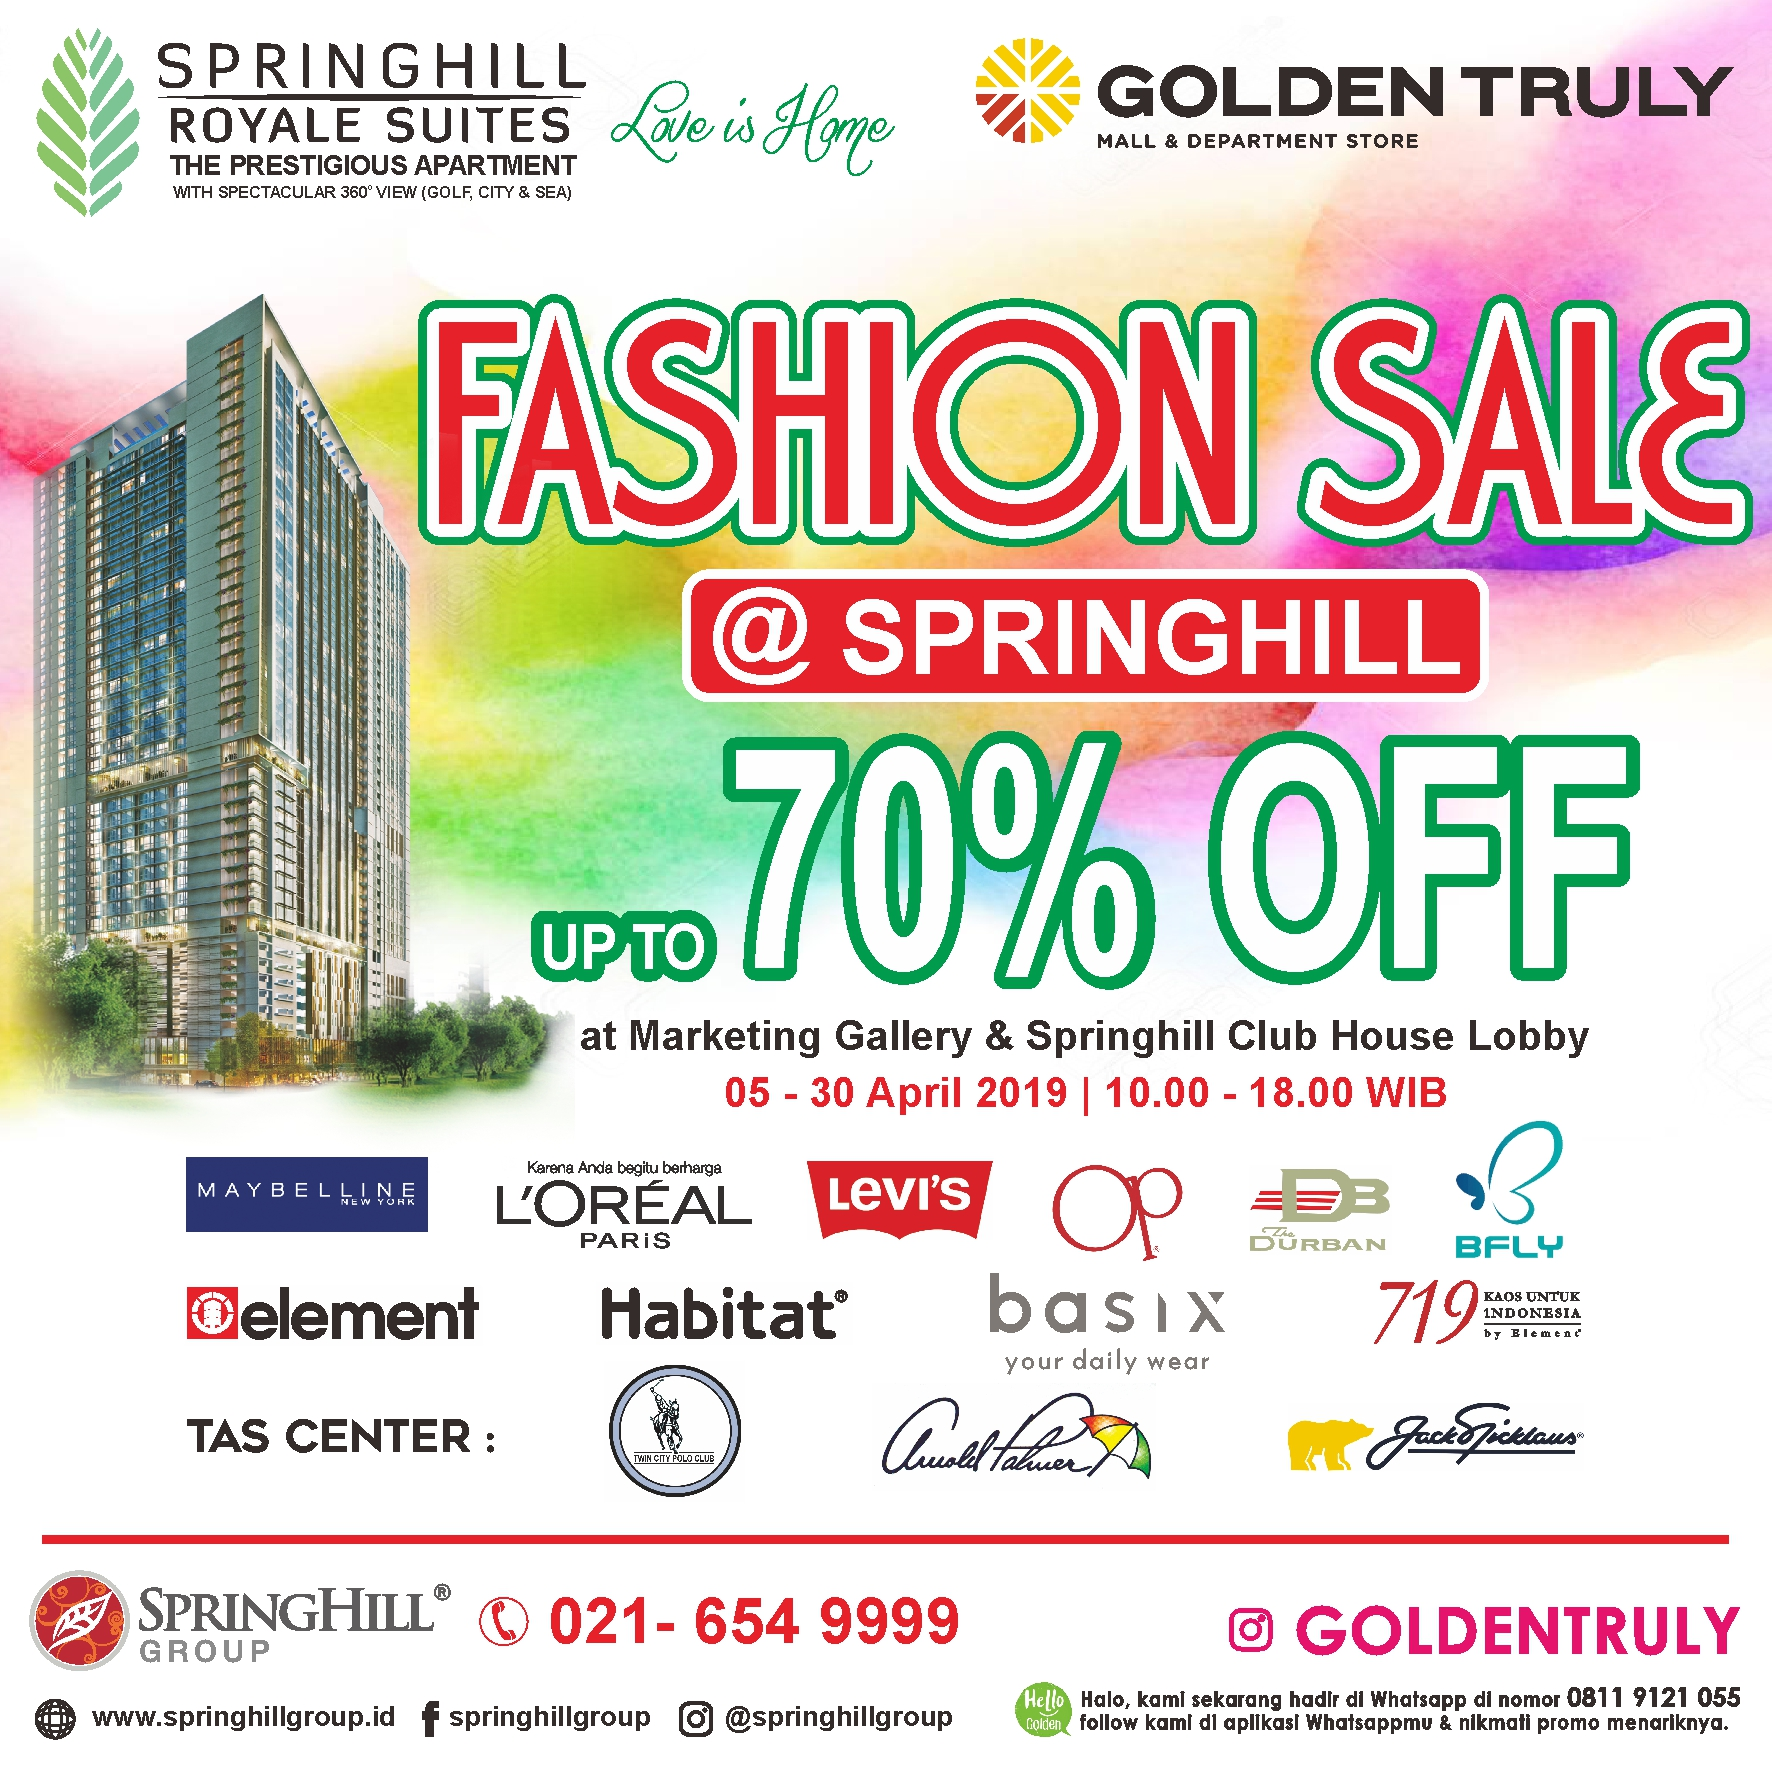 Golden Truly Fashion Sale at Springhill